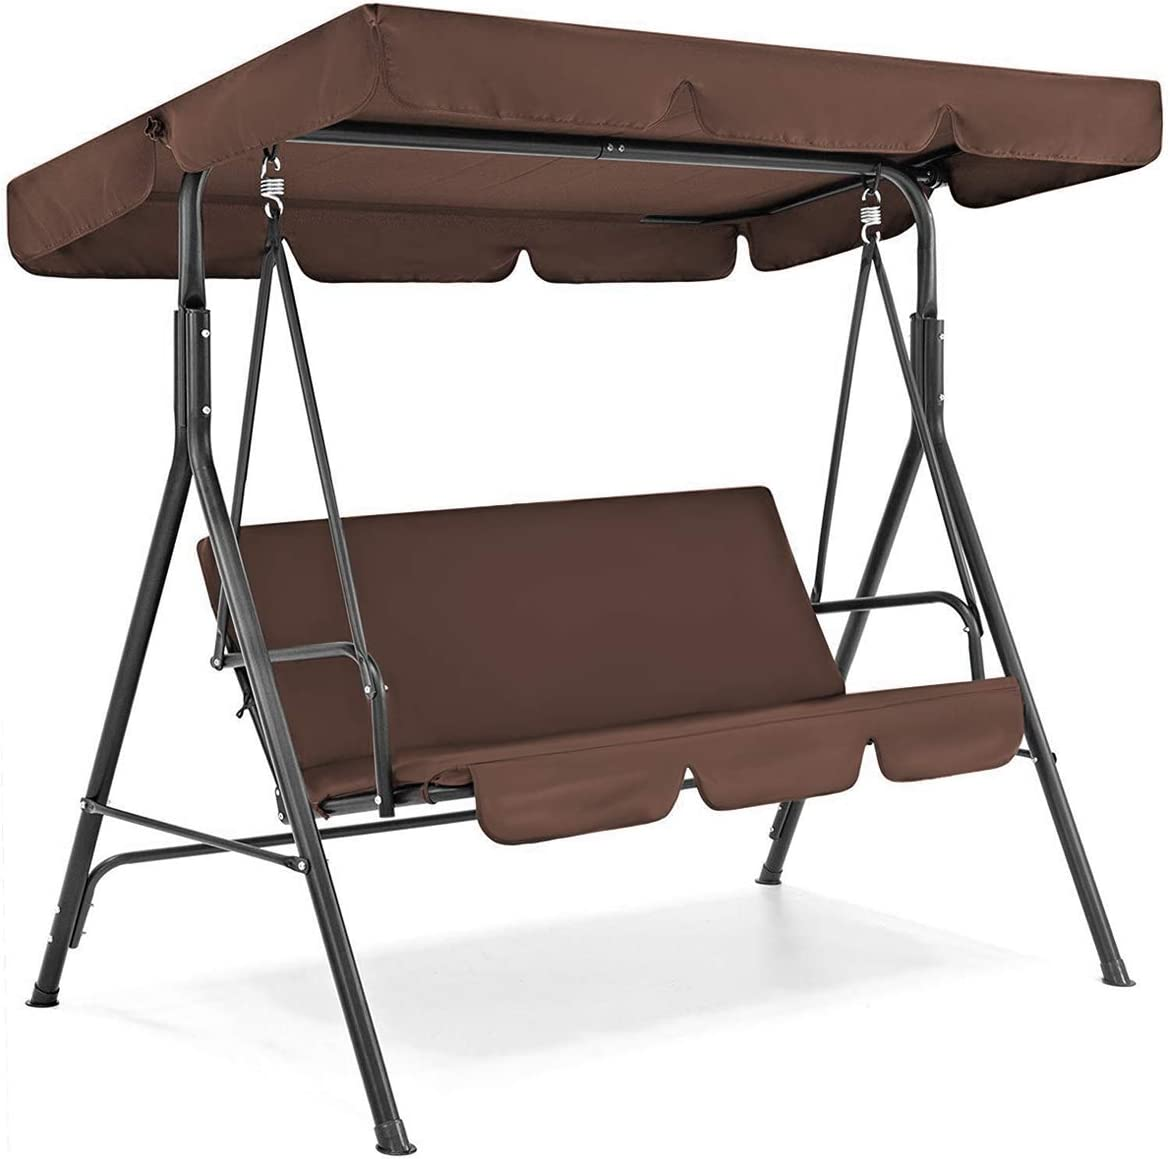 Wallfire Patio Swing Cover Set - Waterproof Swing Canopy Seat Top Cover + Swing Seat Cover for Garden Patio Swing, Outdoor 3 Person Swing Replacement Dustproof for Patio Yard Seat